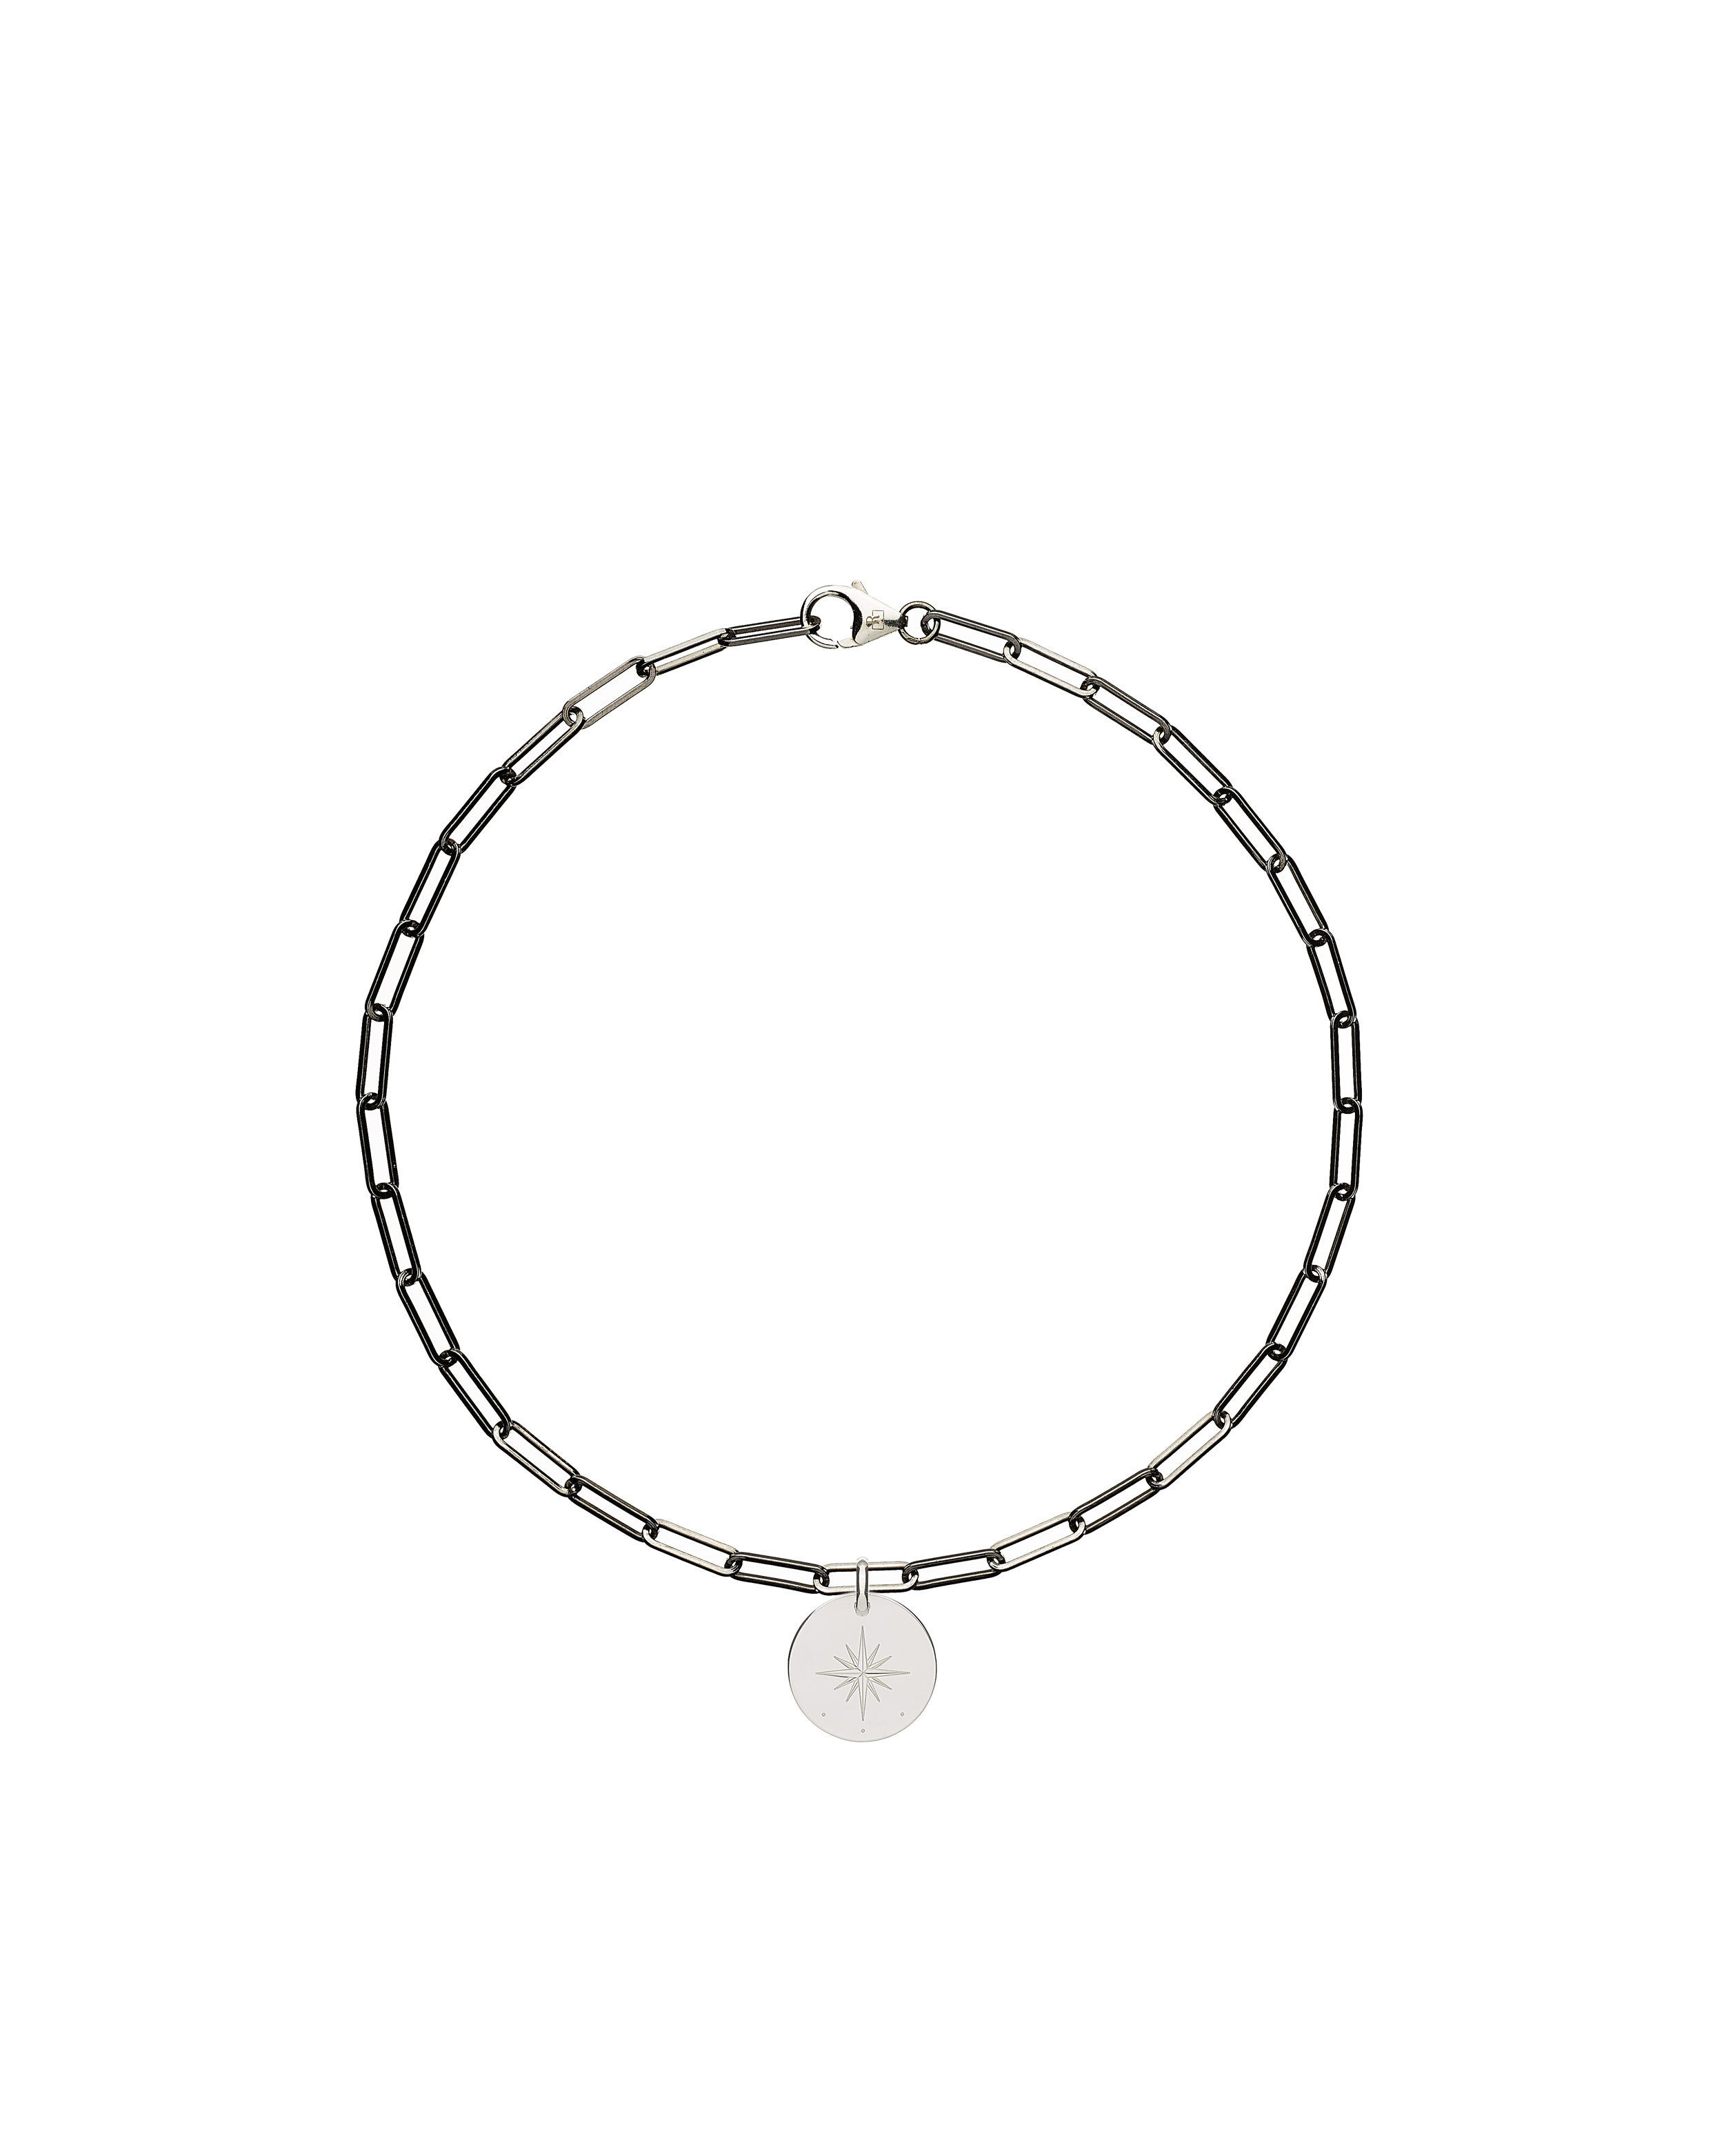 solid 925 Sterling silver and black ruthenium chain choker luxury necklace from Regalia Black Logo collection with a round 925 solid Sterling silver pendant laser engraved with brand's symbol